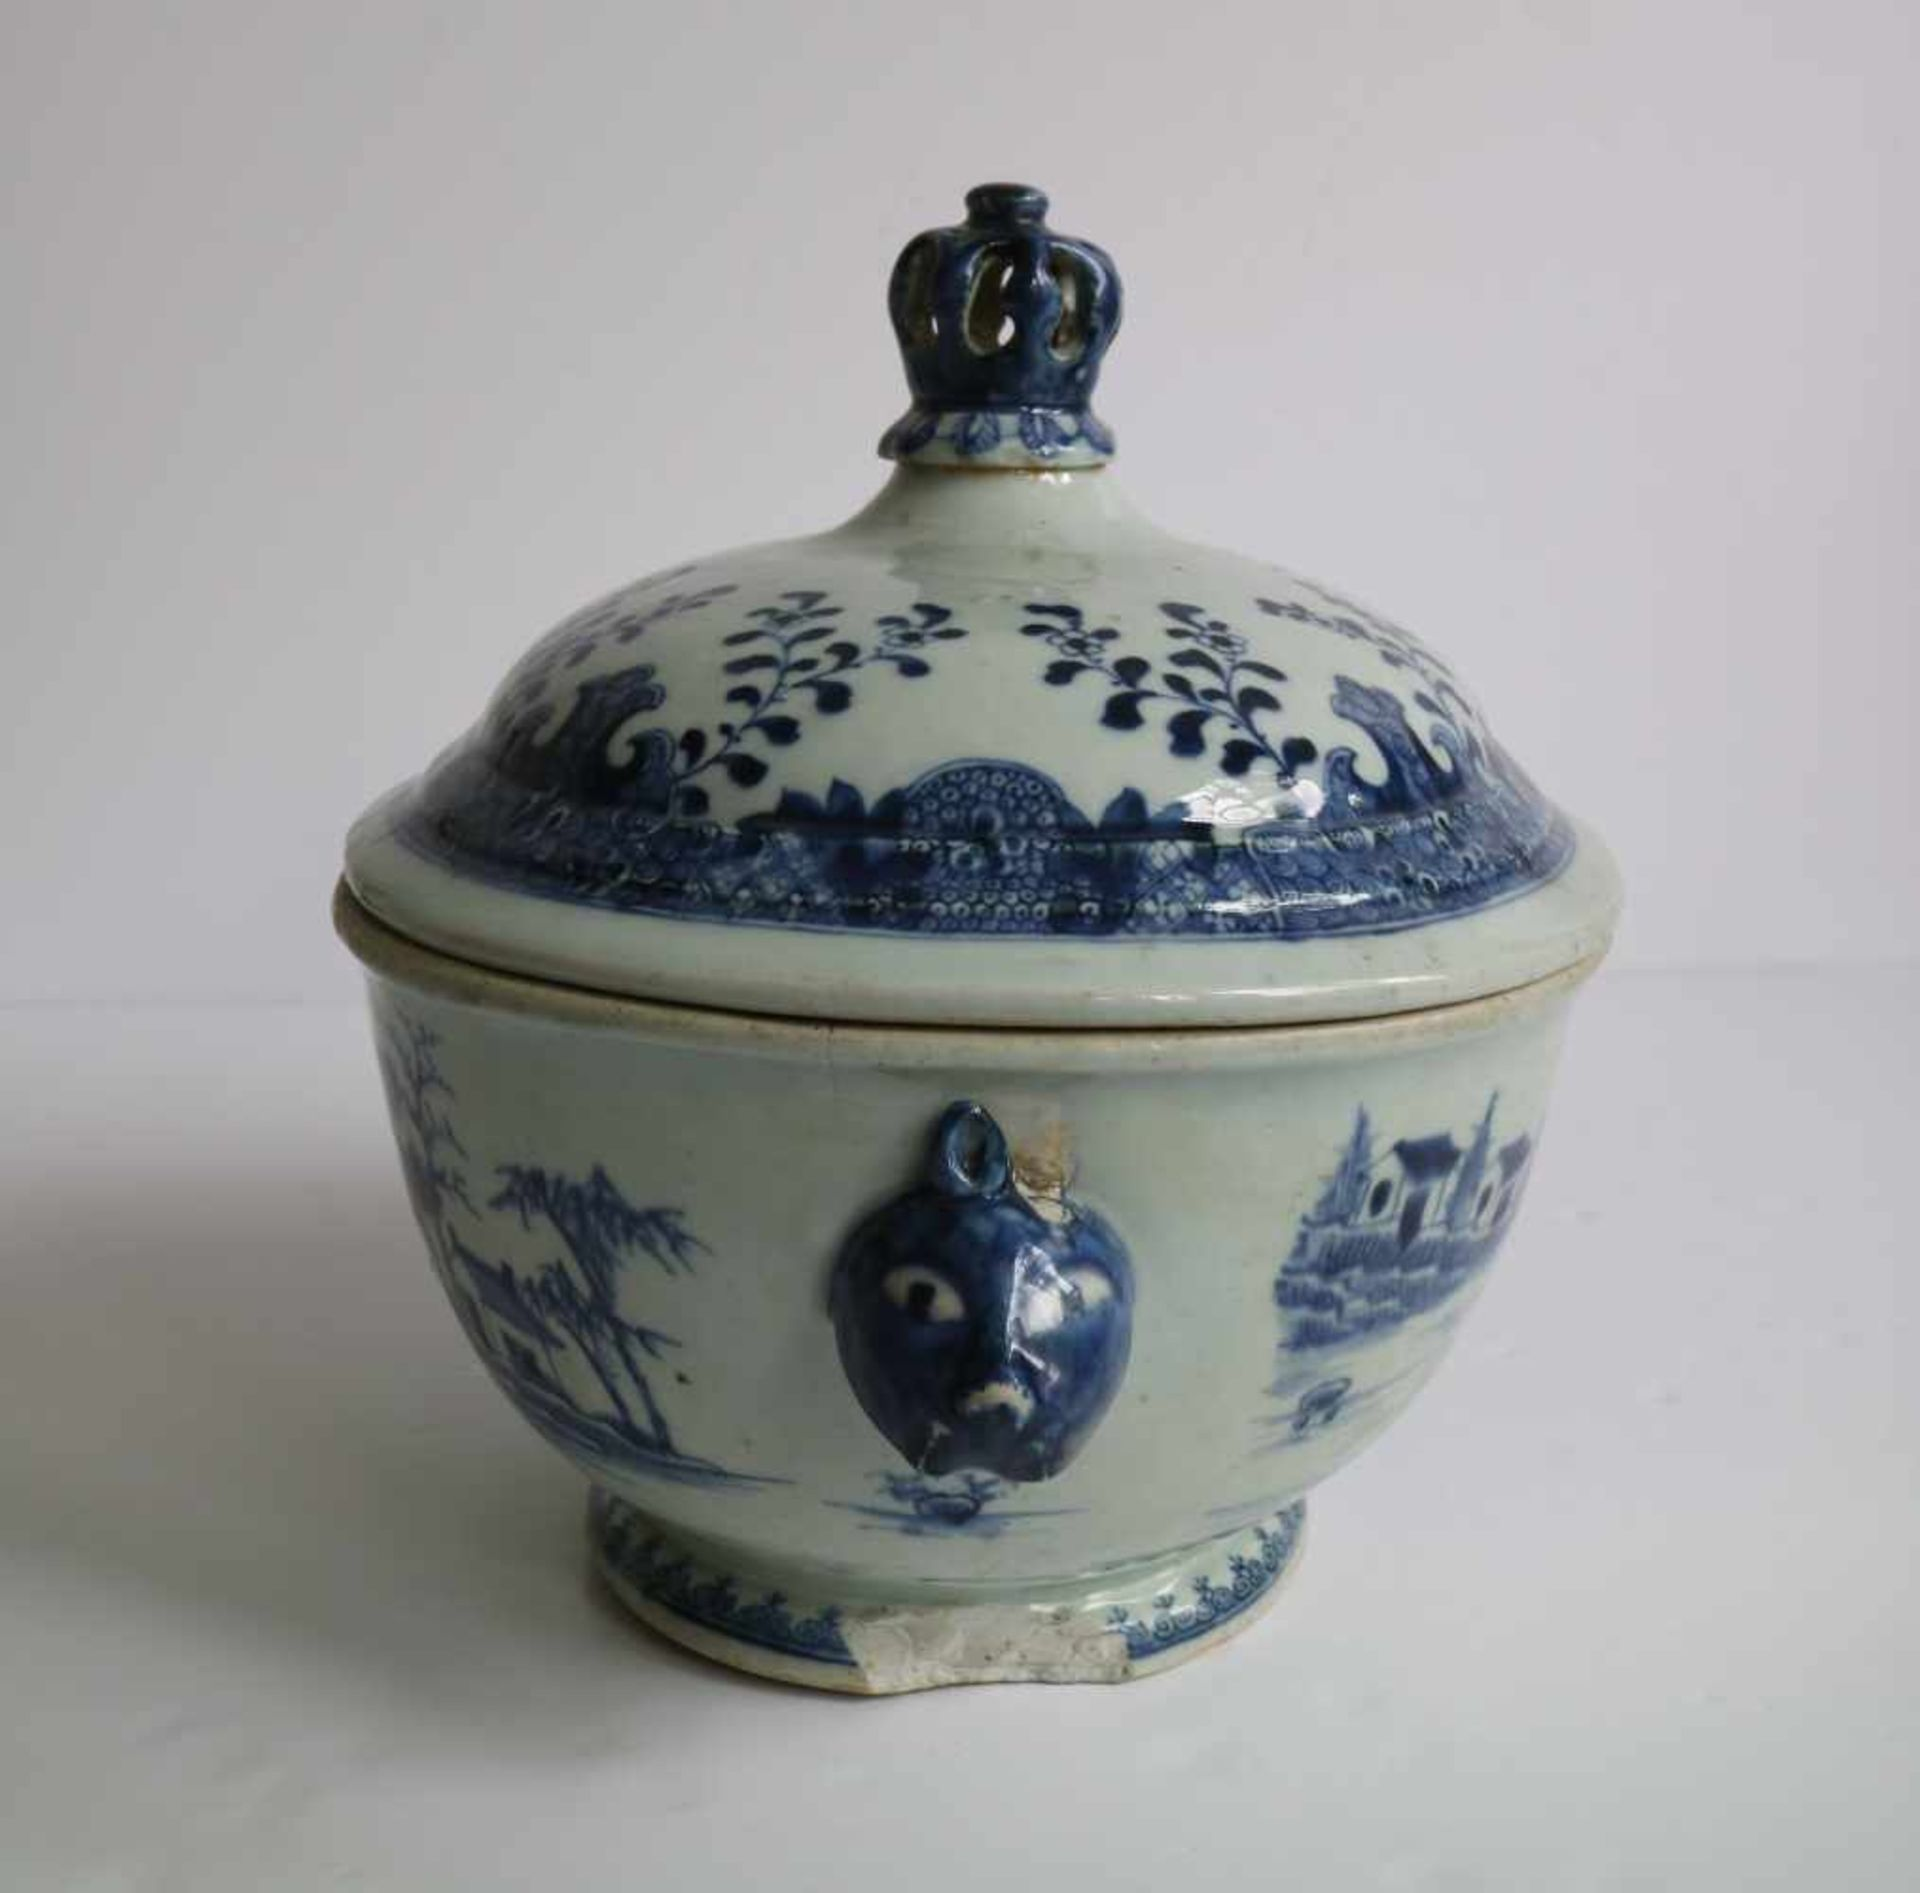 Los 666 - Chinese lidded bowl blue/white 19th century 34 x 24 x 24 cm hairline and damage